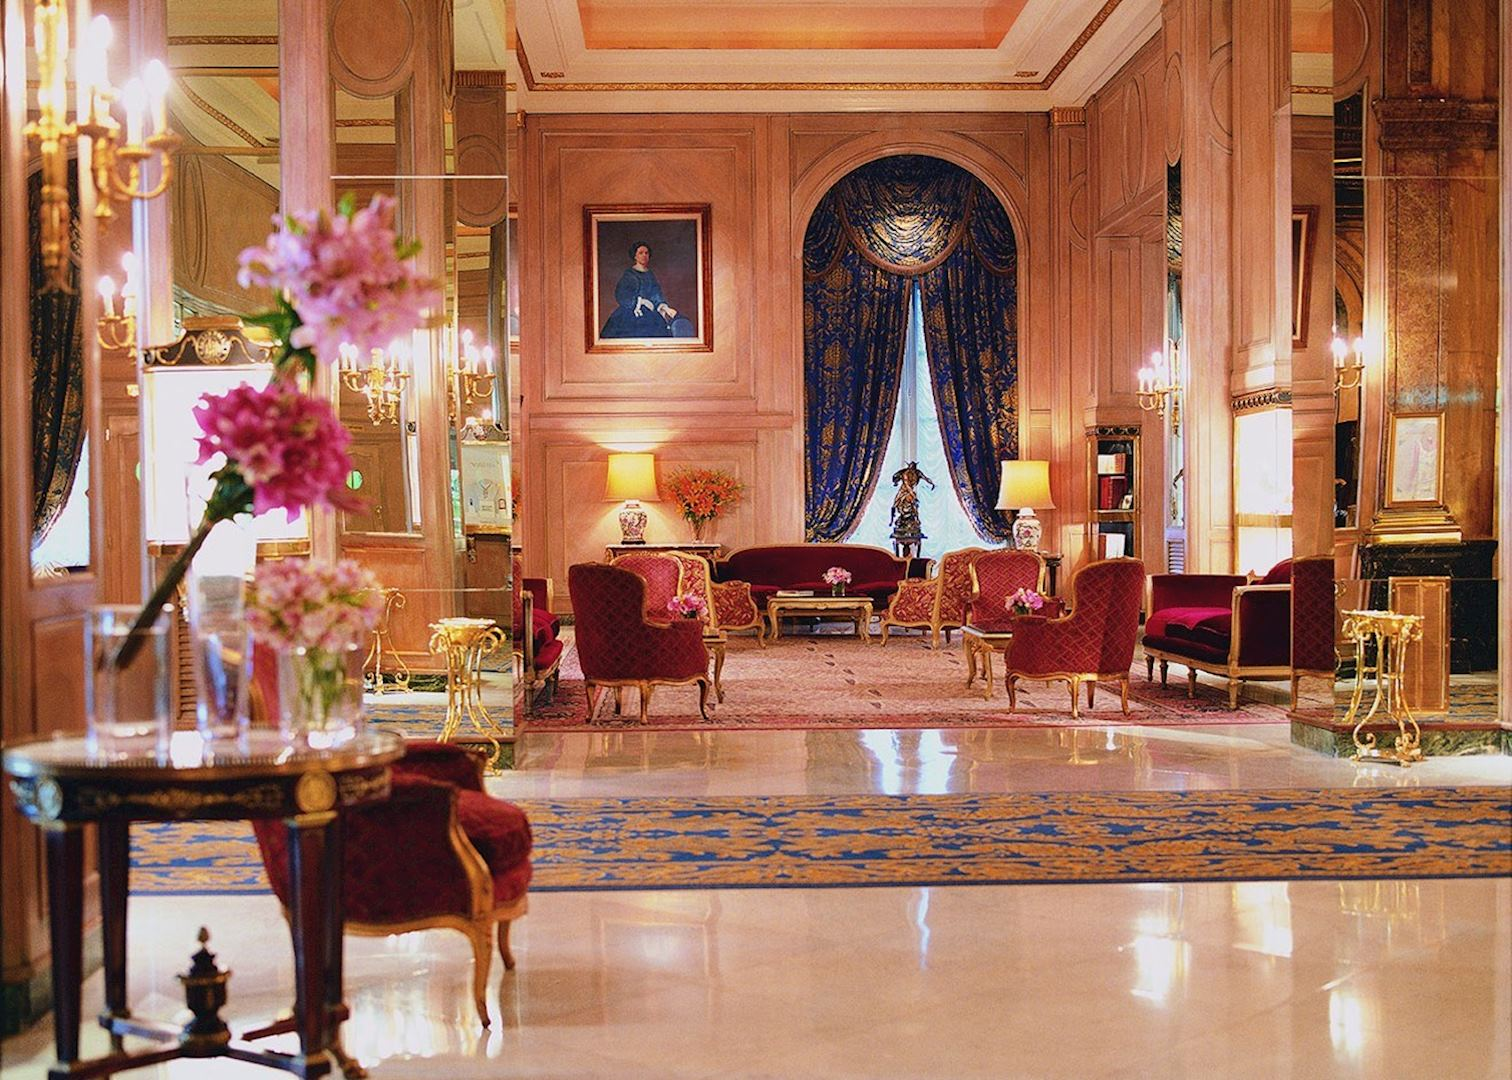 Alvear palace hotels in buenos aires audley travel for Hotel design buenos aires